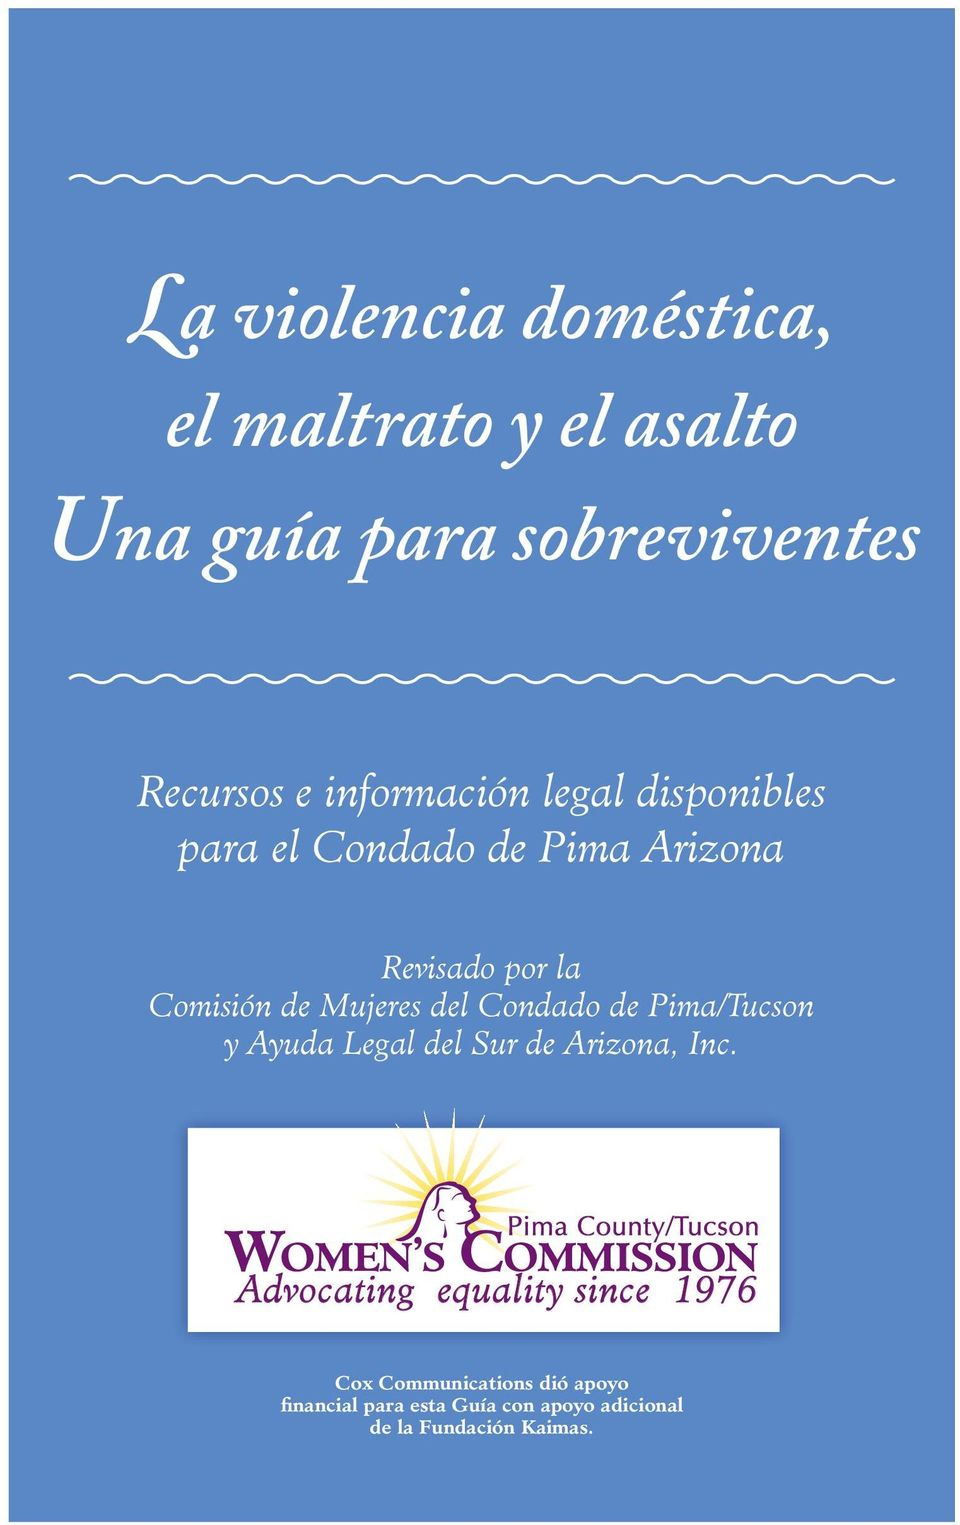 Pima/Tucson y Ayuda Legal del Sur de Arizona, Inc.